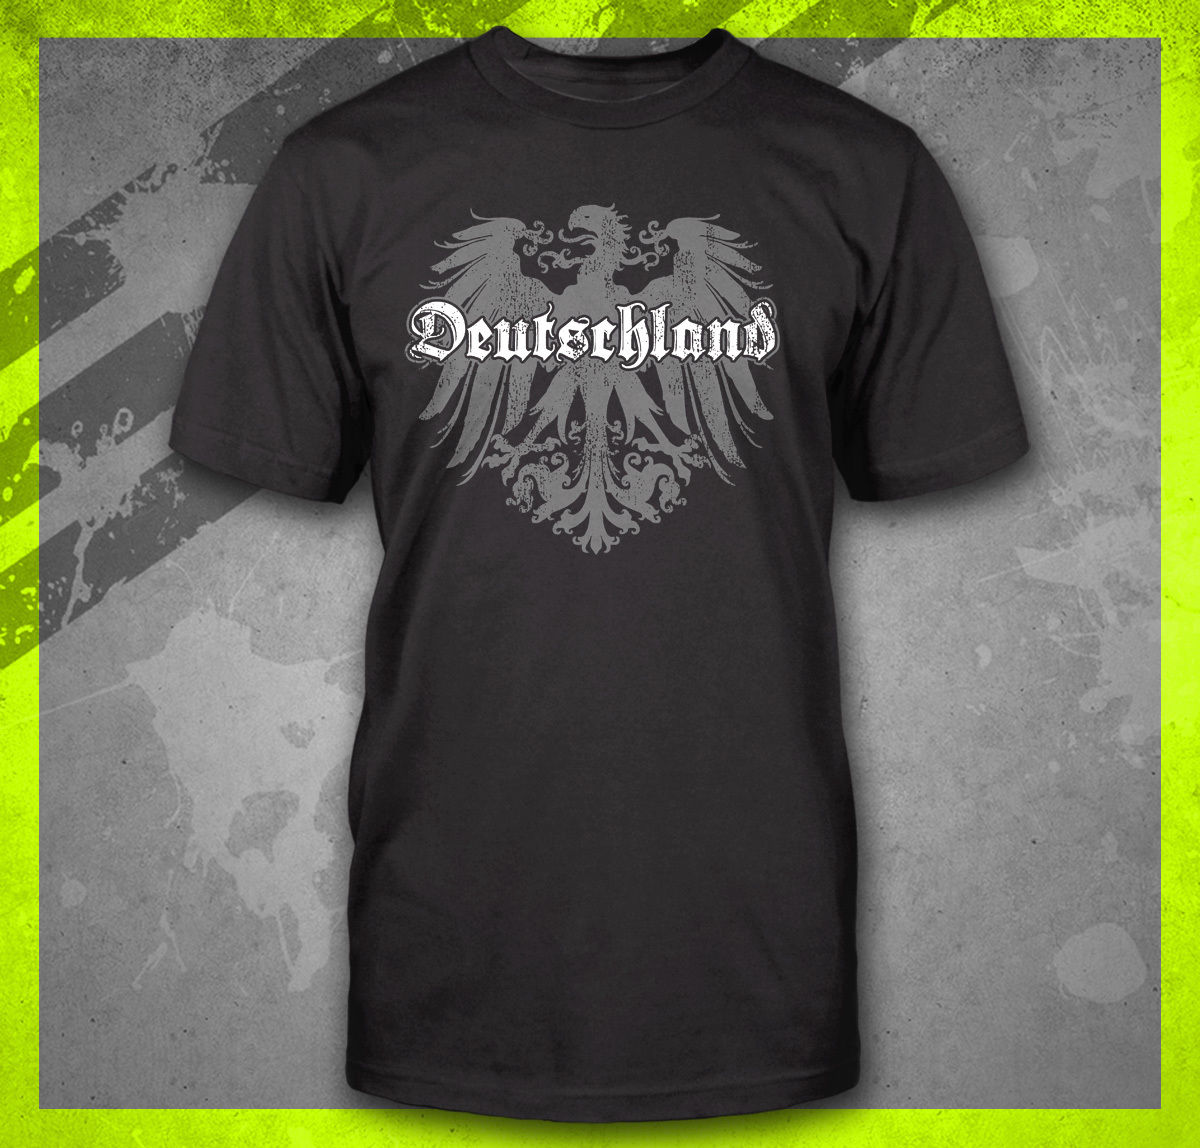 <font><b>DEUTSCHLAND</b></font> GERMAN FLAG CREST GERMANY EAGLE TEE SOCCER FOOTBALL FUNNY T-SHIRT Cool Casual pride t shirt men Unisex New Fashion image